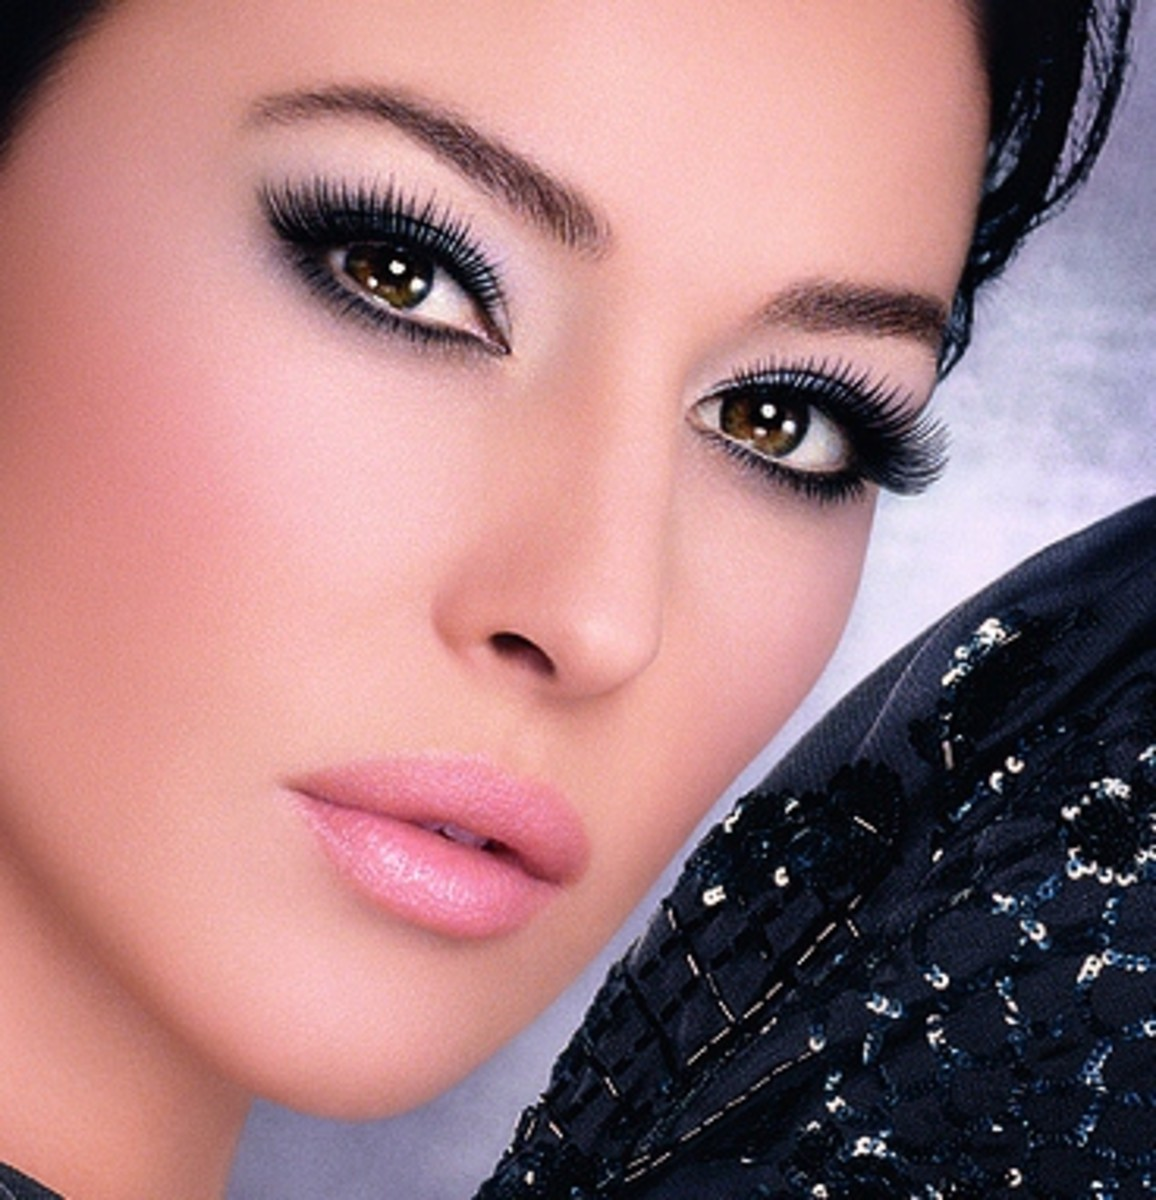 Monica Bellucci in Violet Eyeshadow